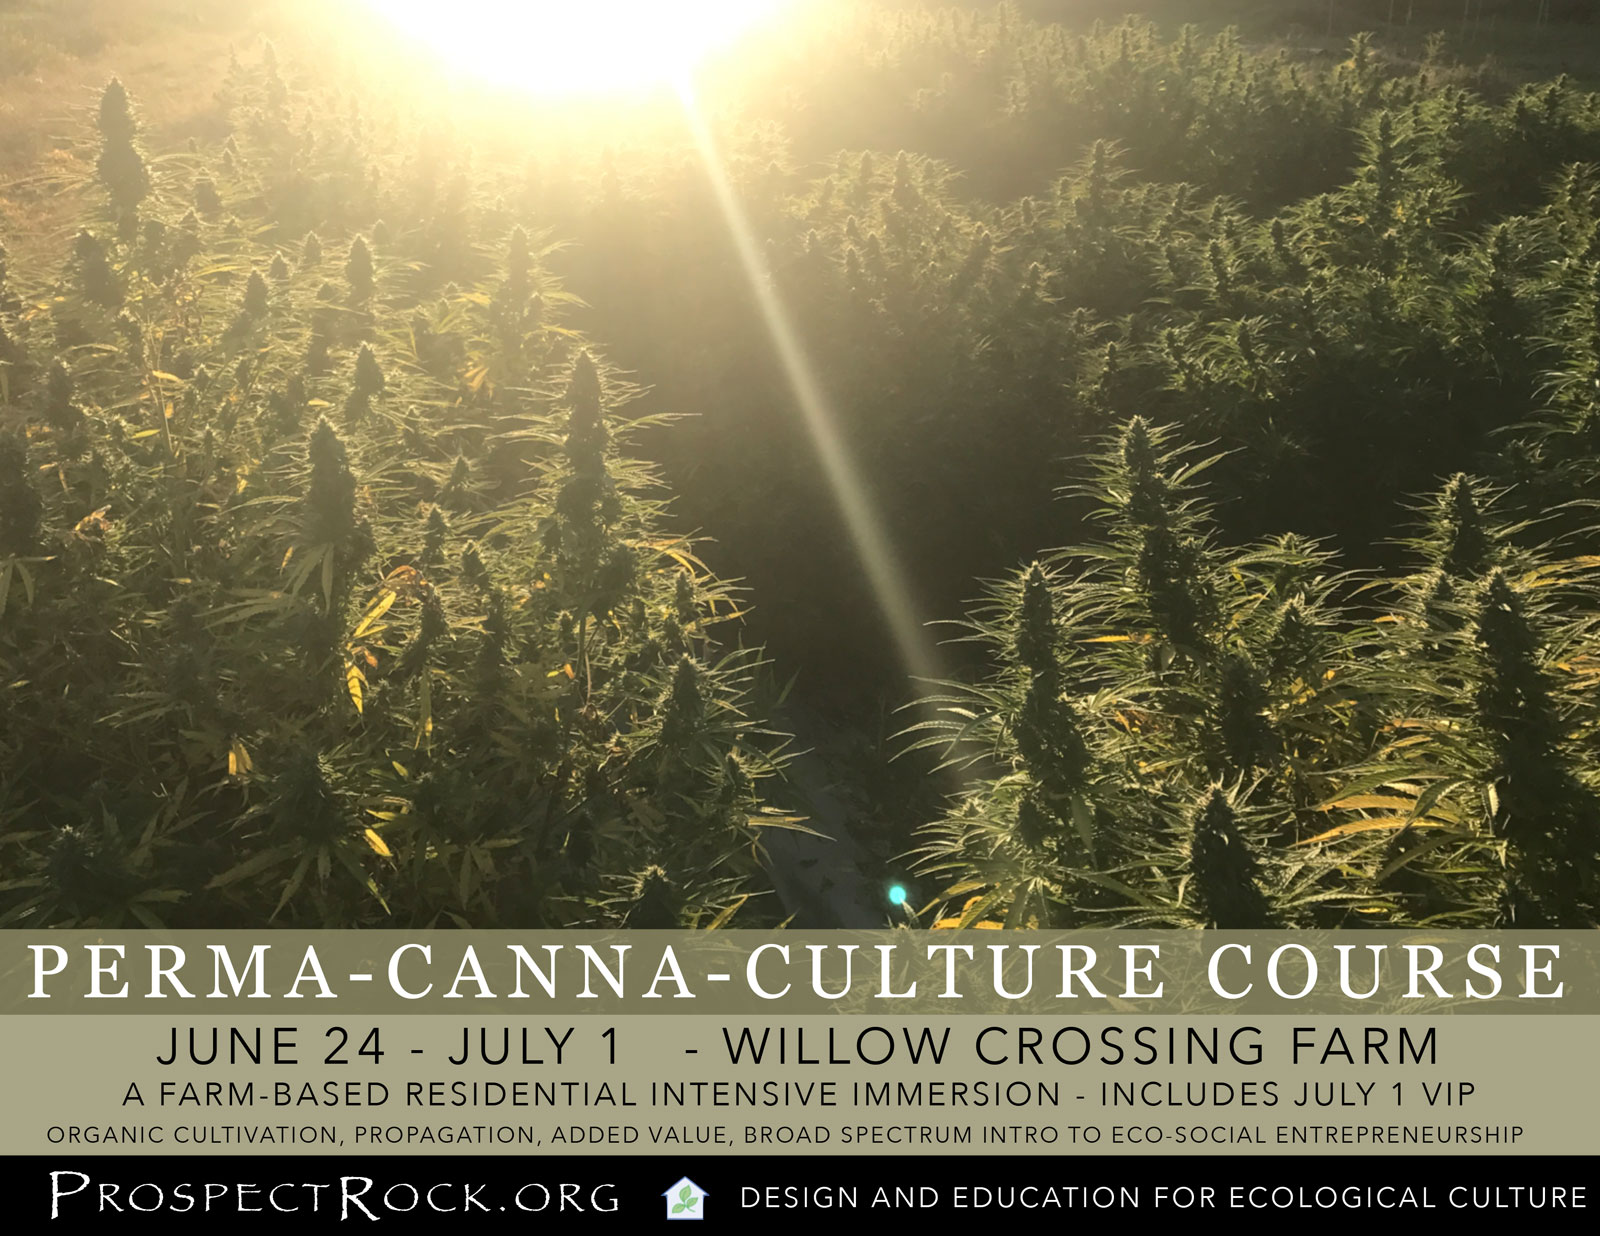 Residential Intensive CannaCulture Course at Willow Crossing